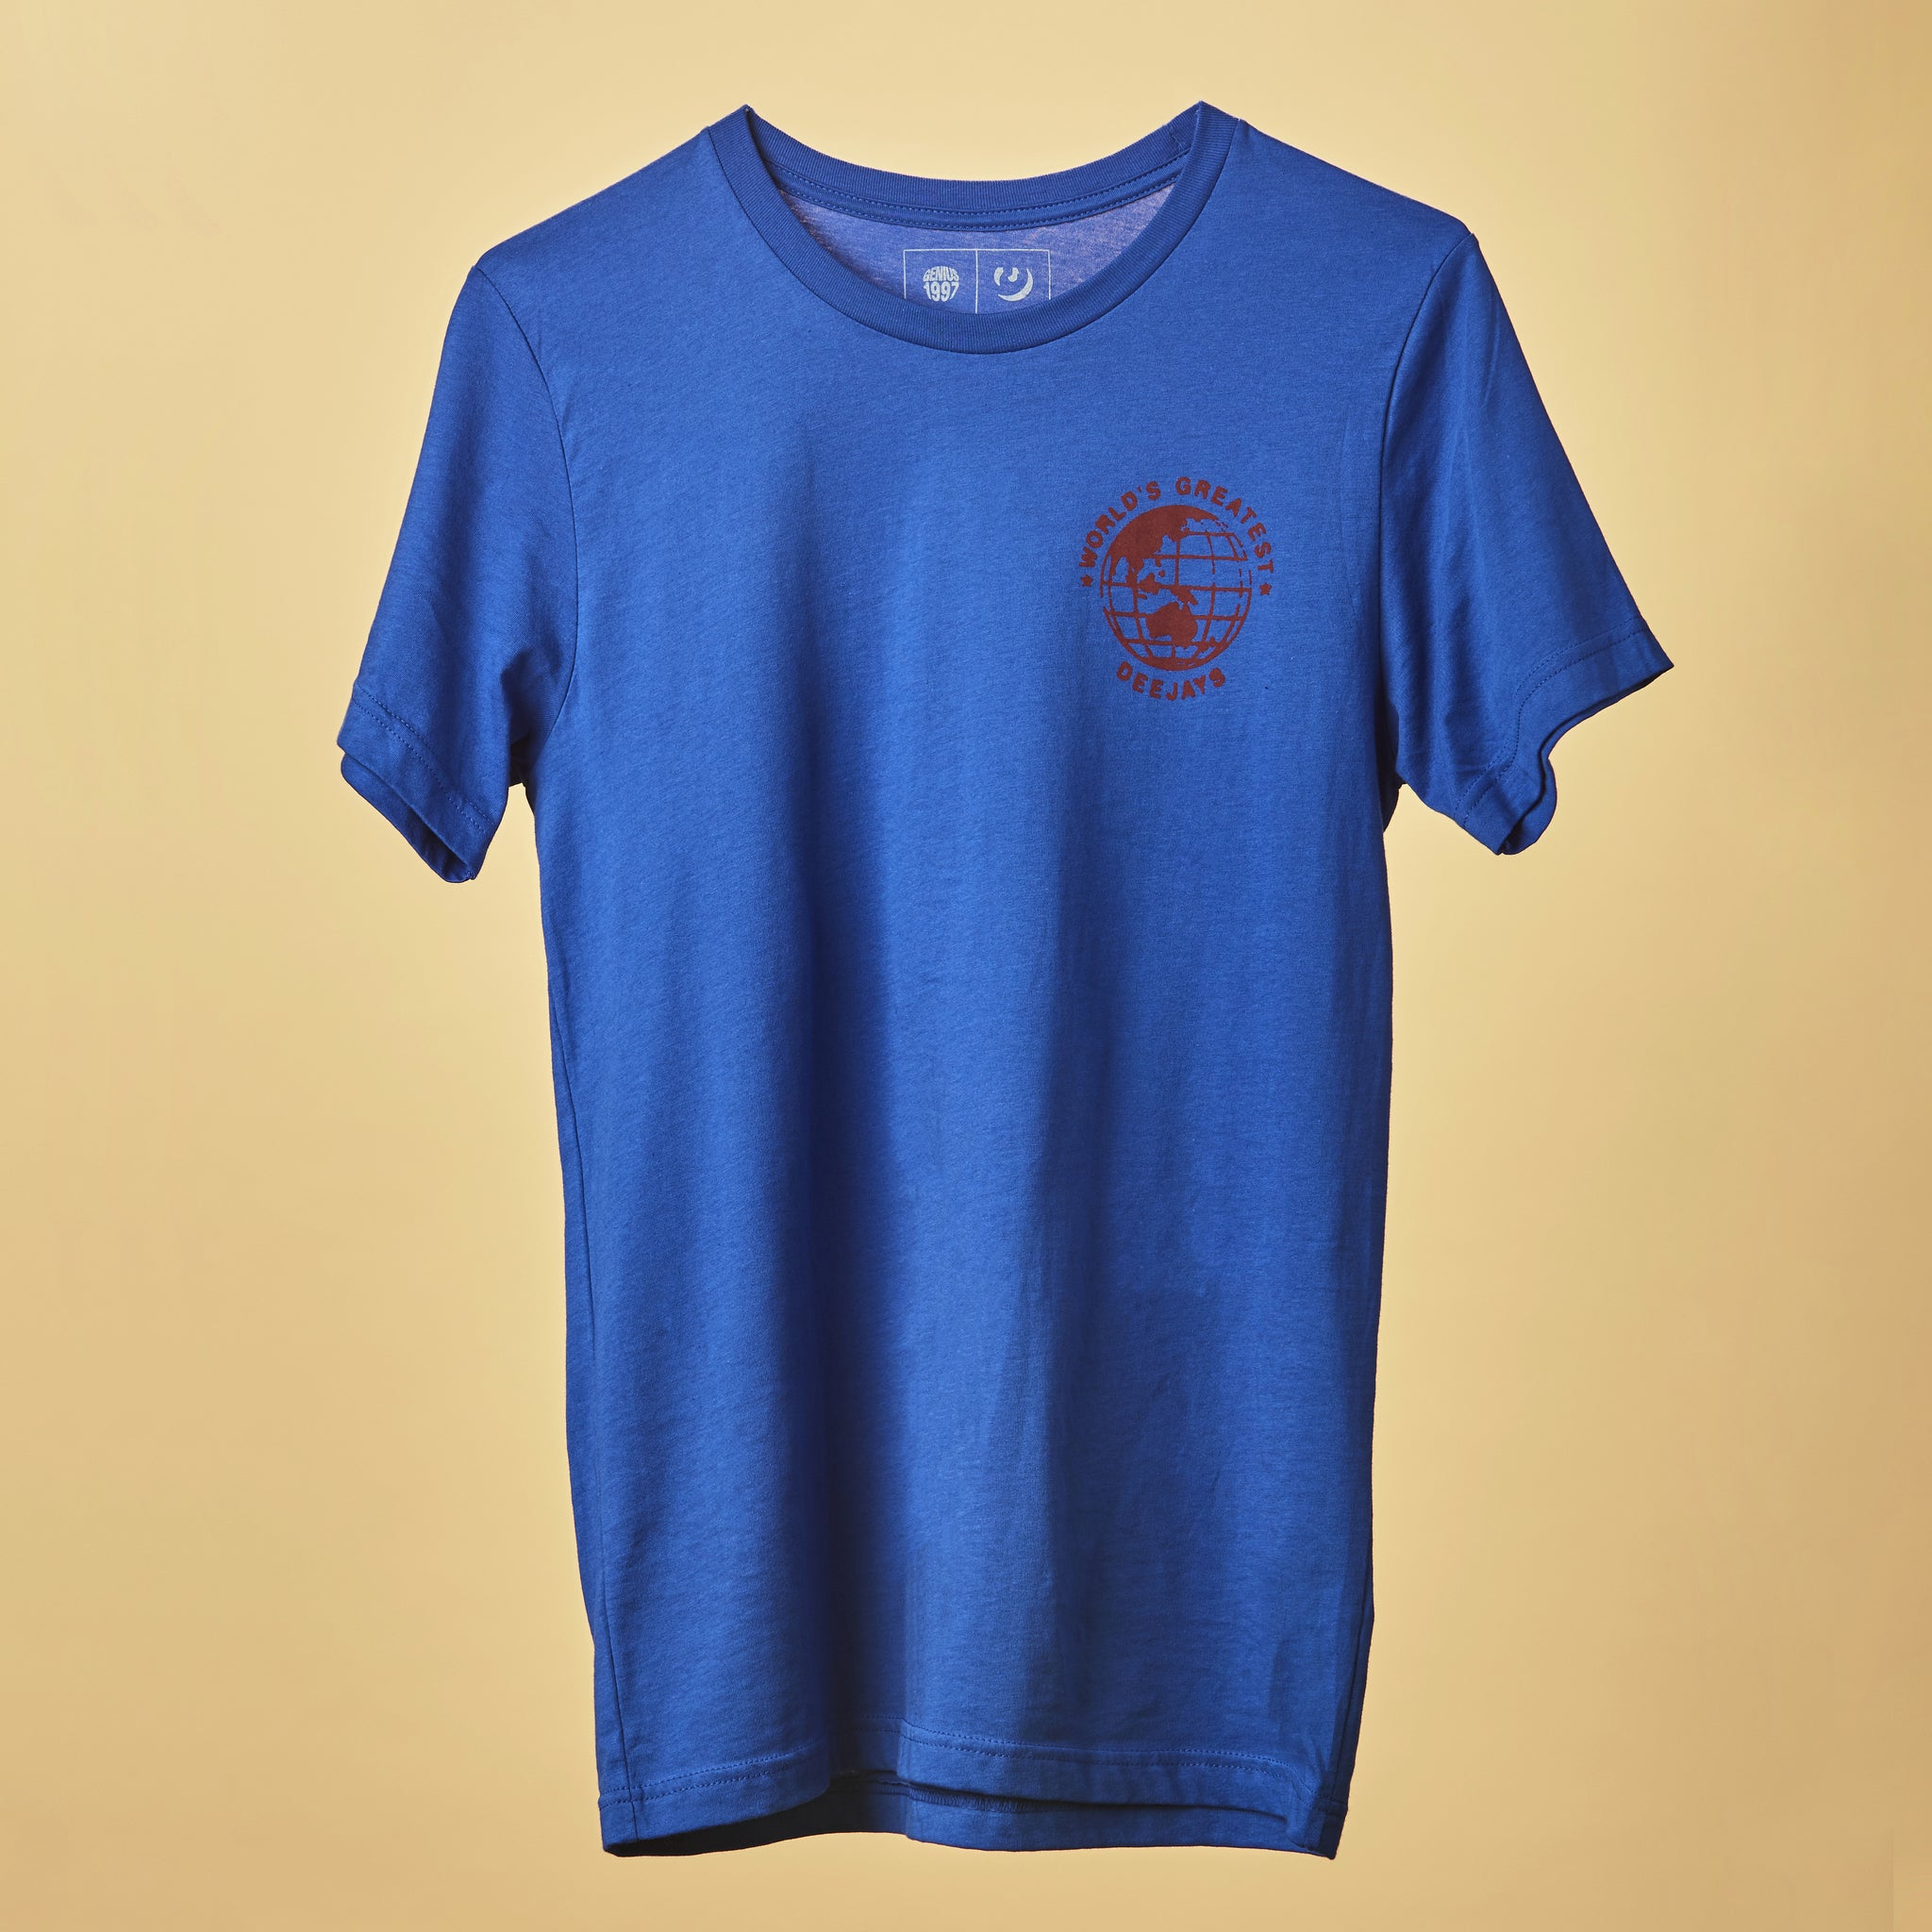 World's Greatest Deejays Tee - Blue